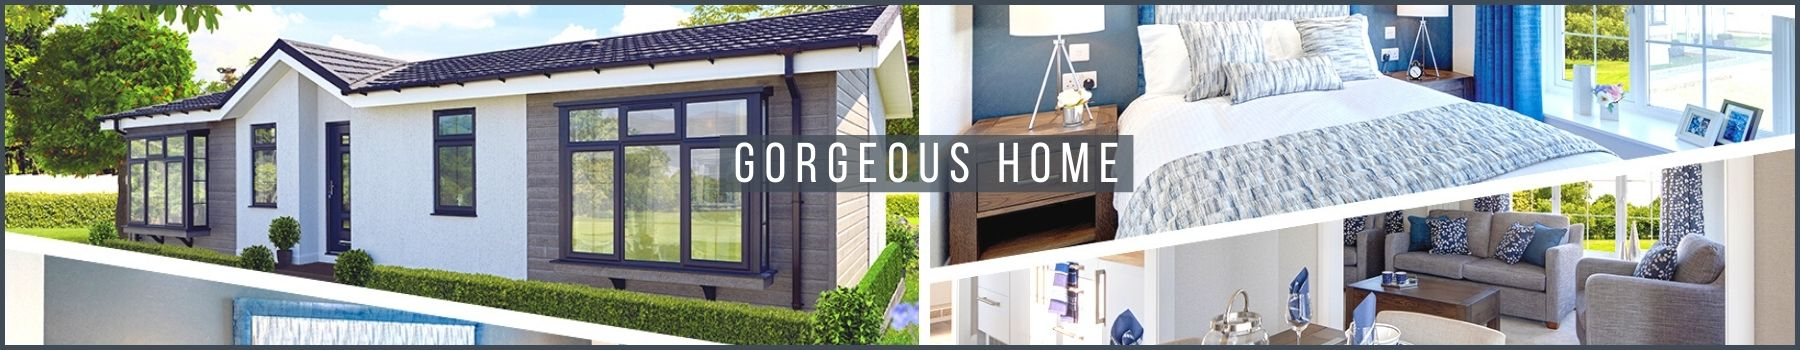 Willerby Charnwood Gorgeous Home Banner